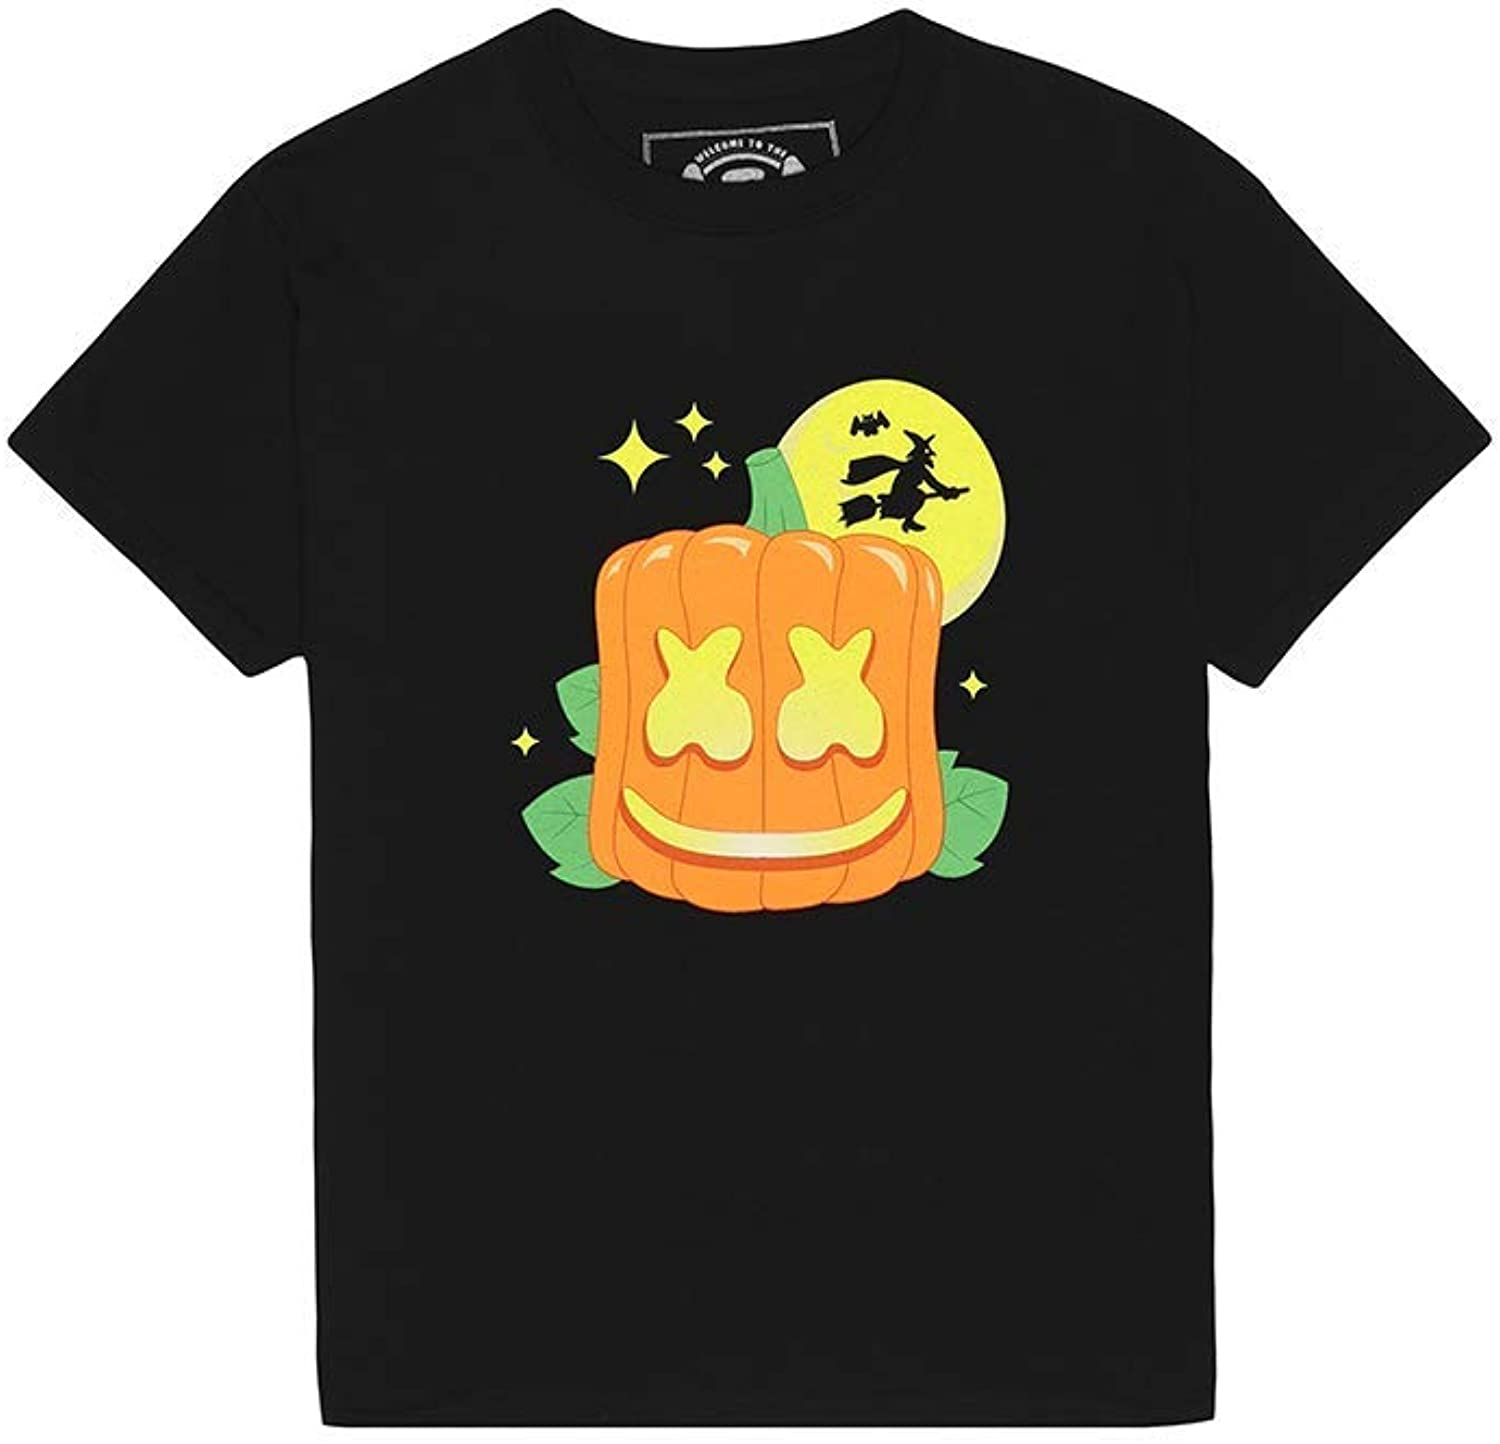 Marshmello Authentic Merchandise - Youth Sizing Youth Mello Pumpkin T-Shirt